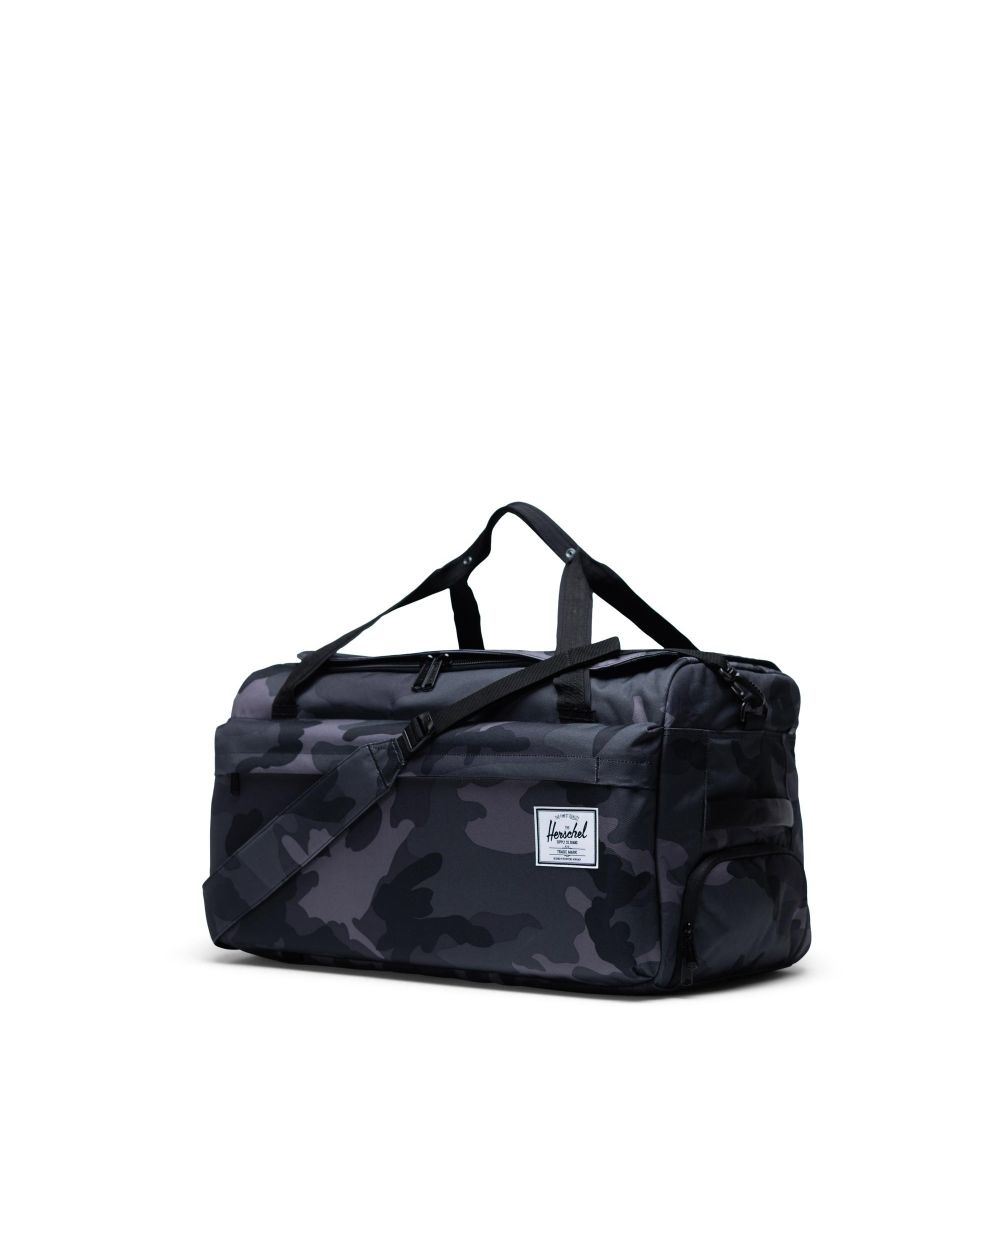 OUTFITTER LUGGAGE 50L-2